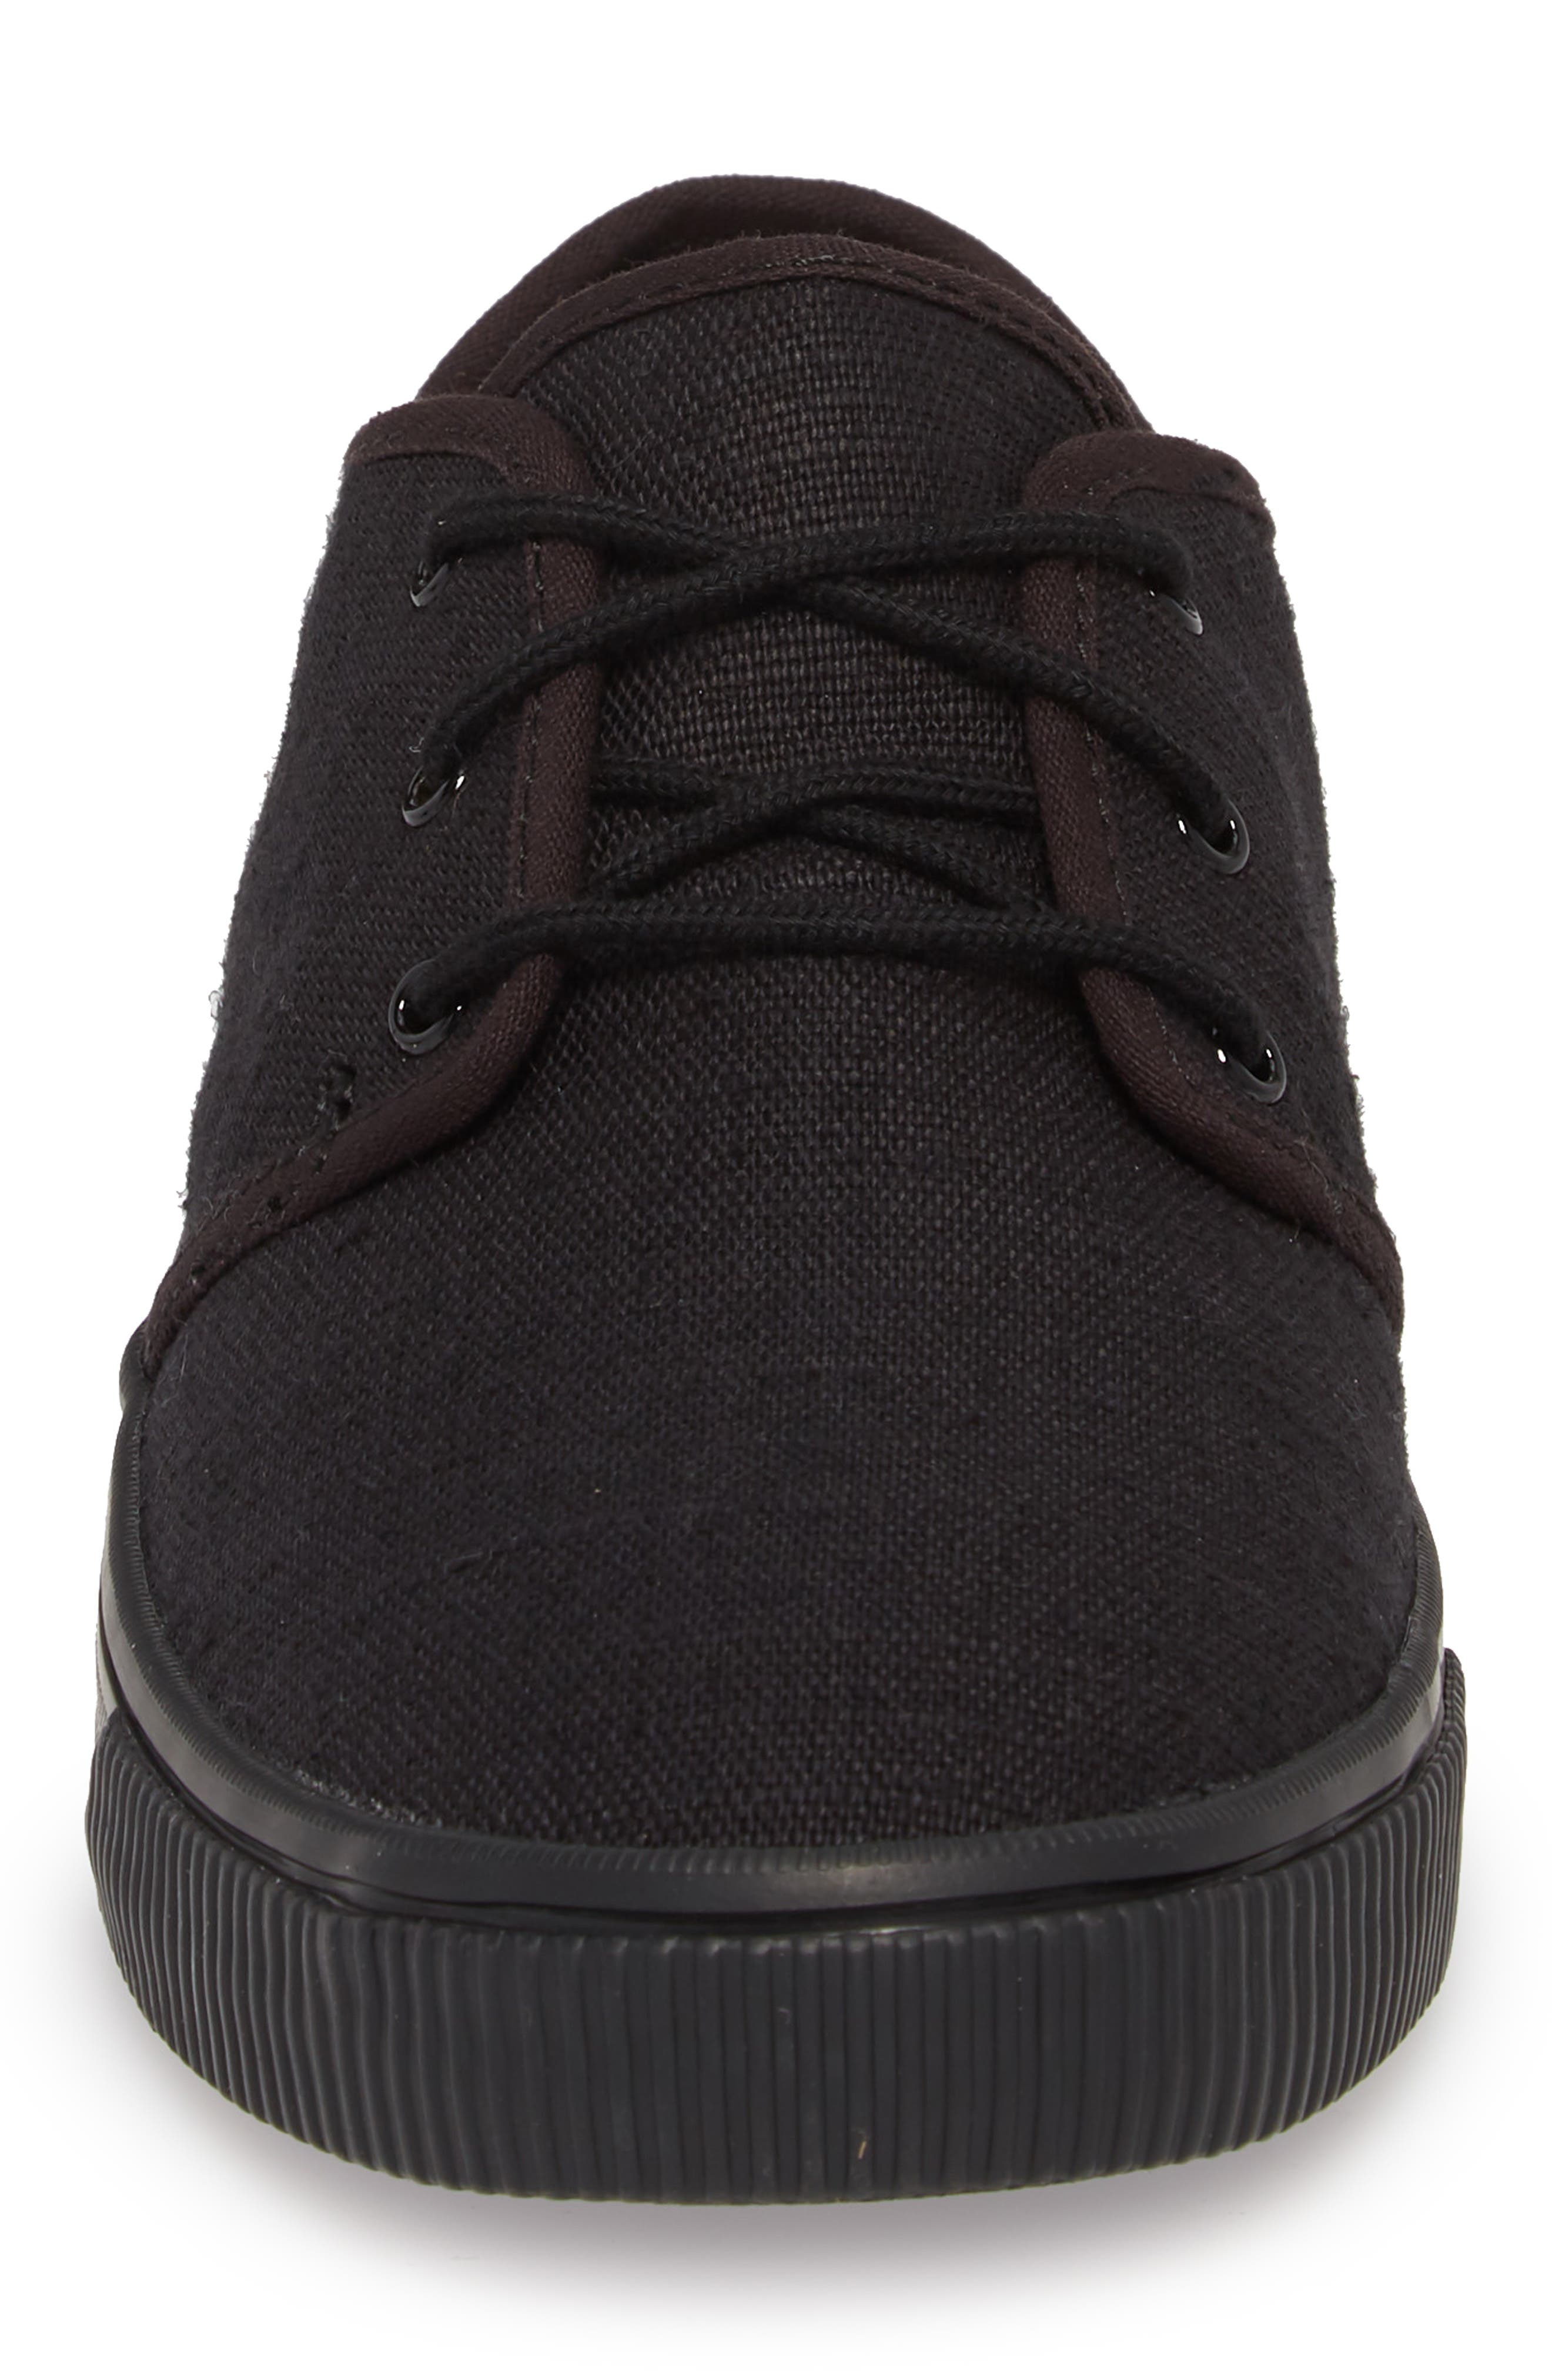 Carlo Low Top Sneaker,                             Alternate thumbnail 4, color,                             BLACK/ BLACK HERITAGE CANVAS